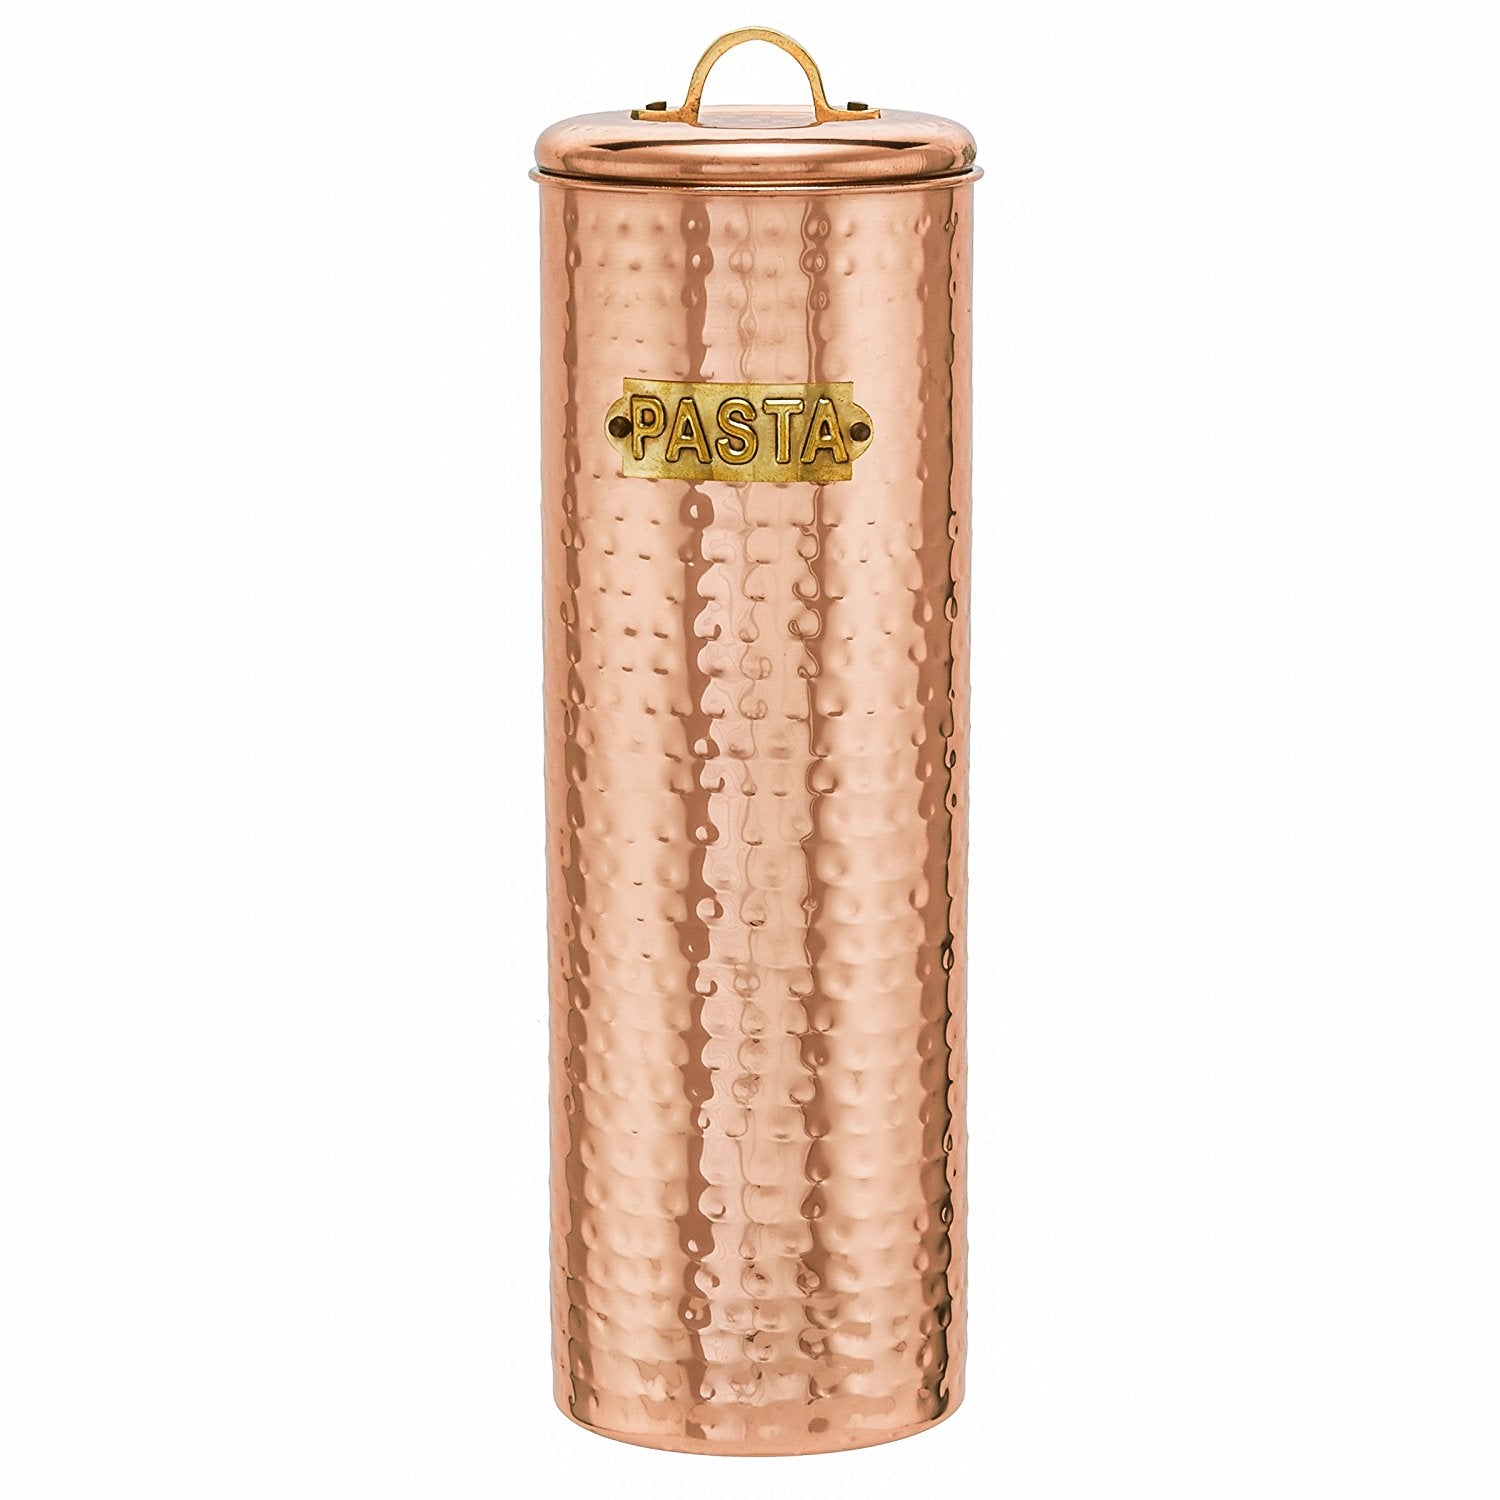 Old Dutch Copper Pasta Canister